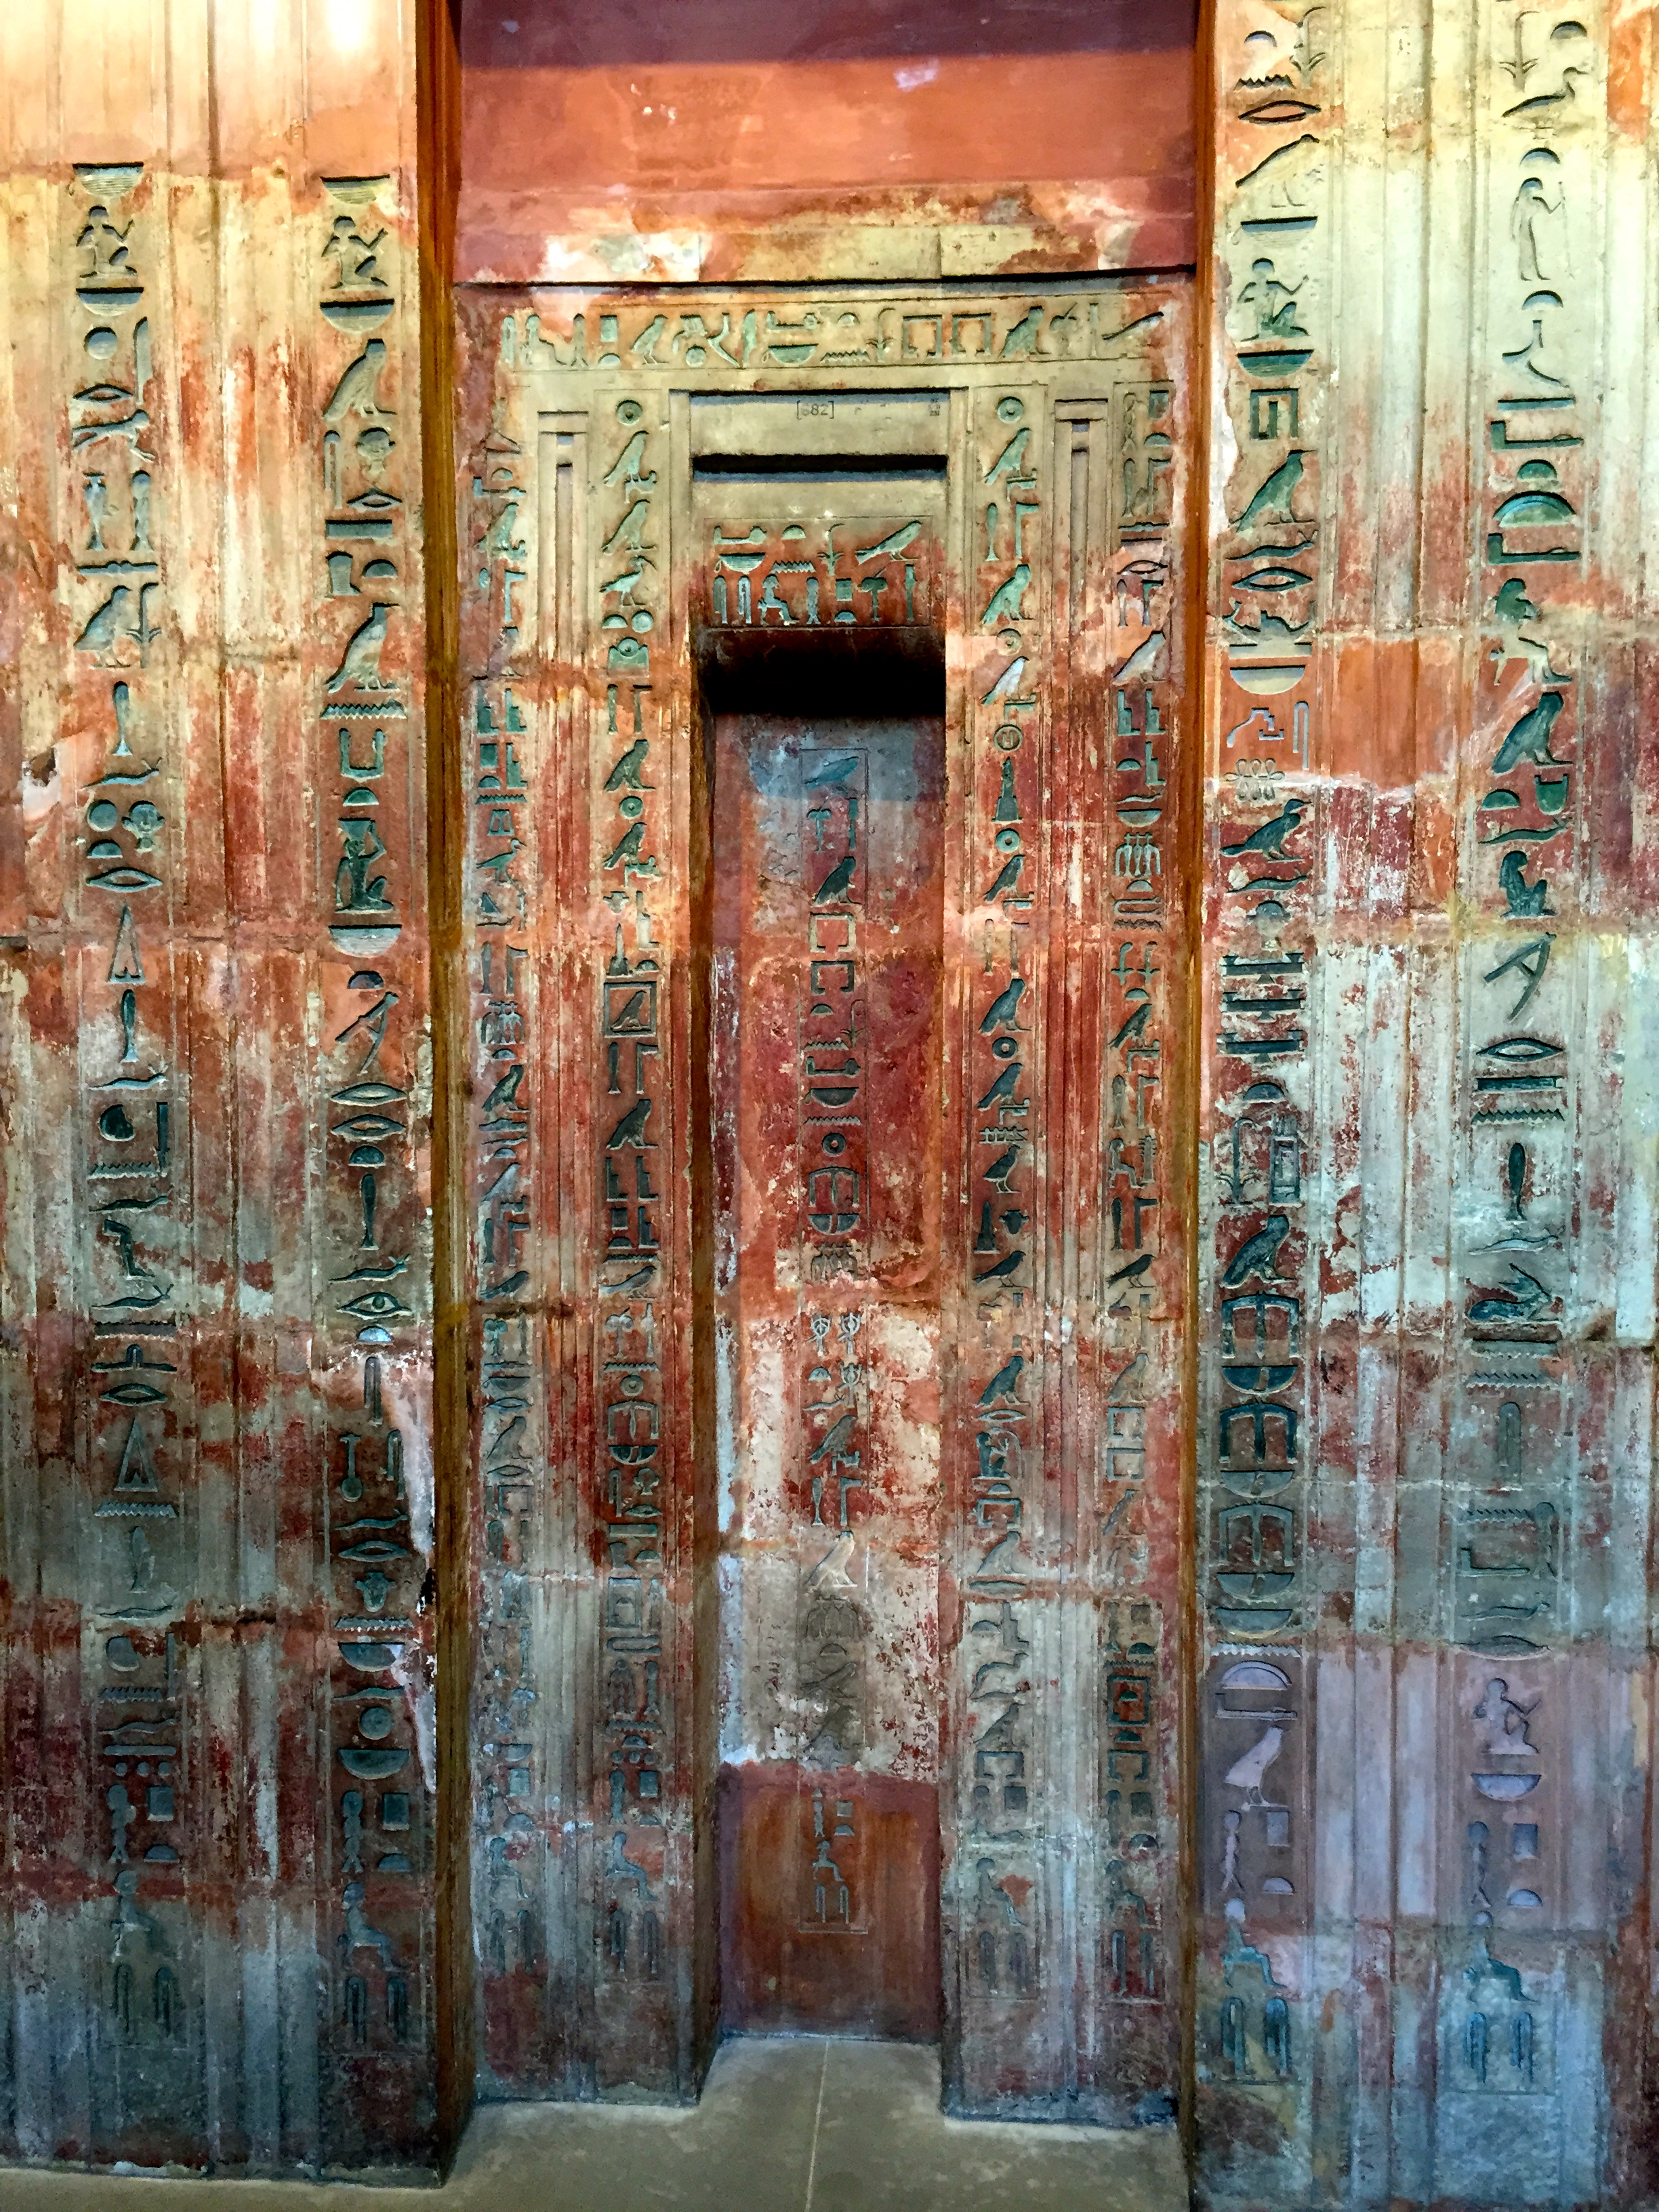 It\u0027s Thursday and time for another door. This week I have a very very old door. It currently lives in The British Museum London but over four millennia ... & Thursday Doors \u2013 The British Museum London | Journey To Ambeth